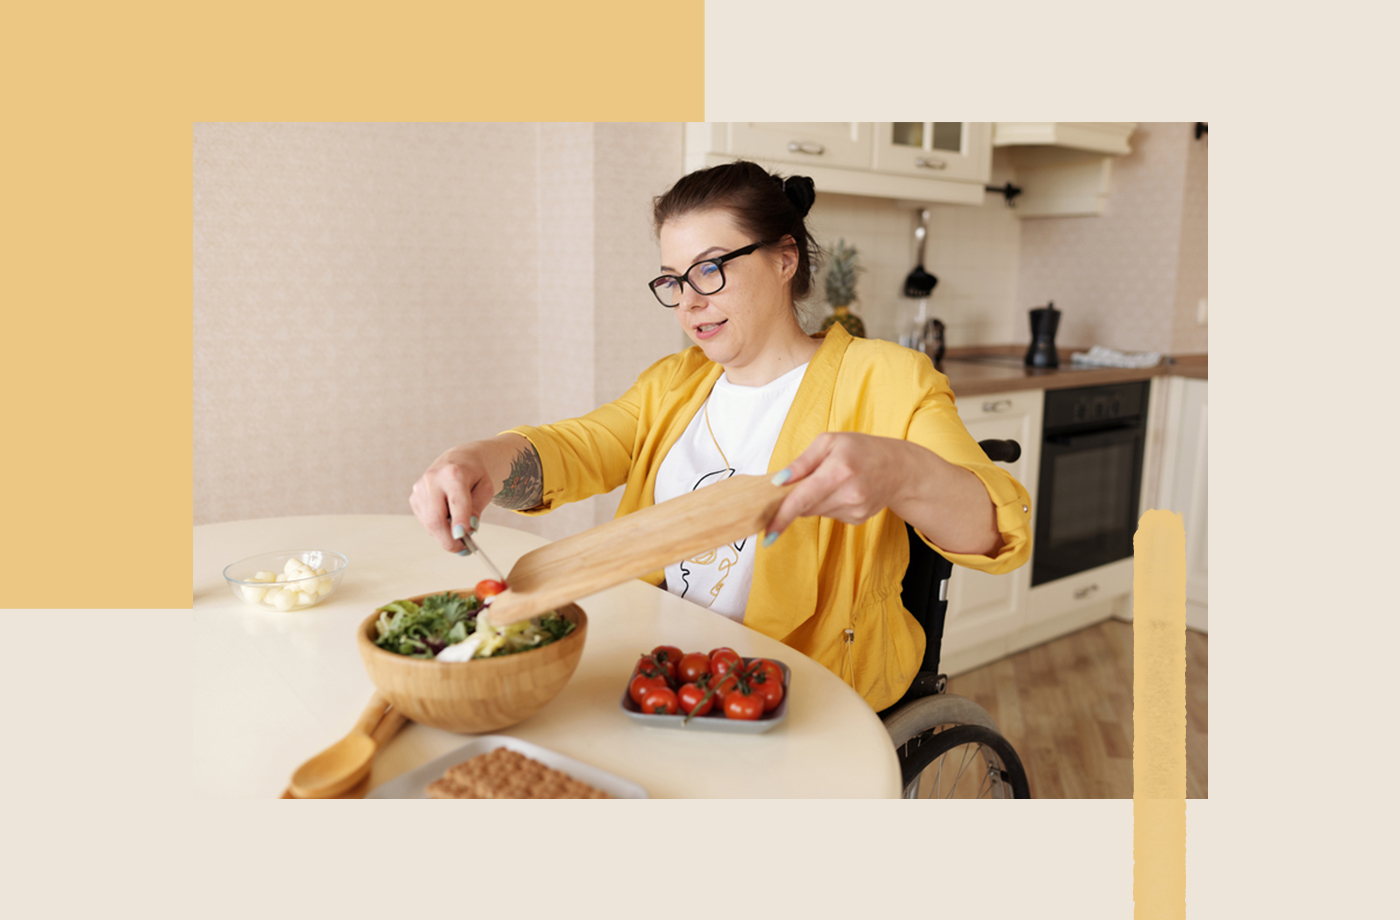 Thumbnail for Healthy Cooking Can Come With Many Unfair Barriers for People With Disabilities